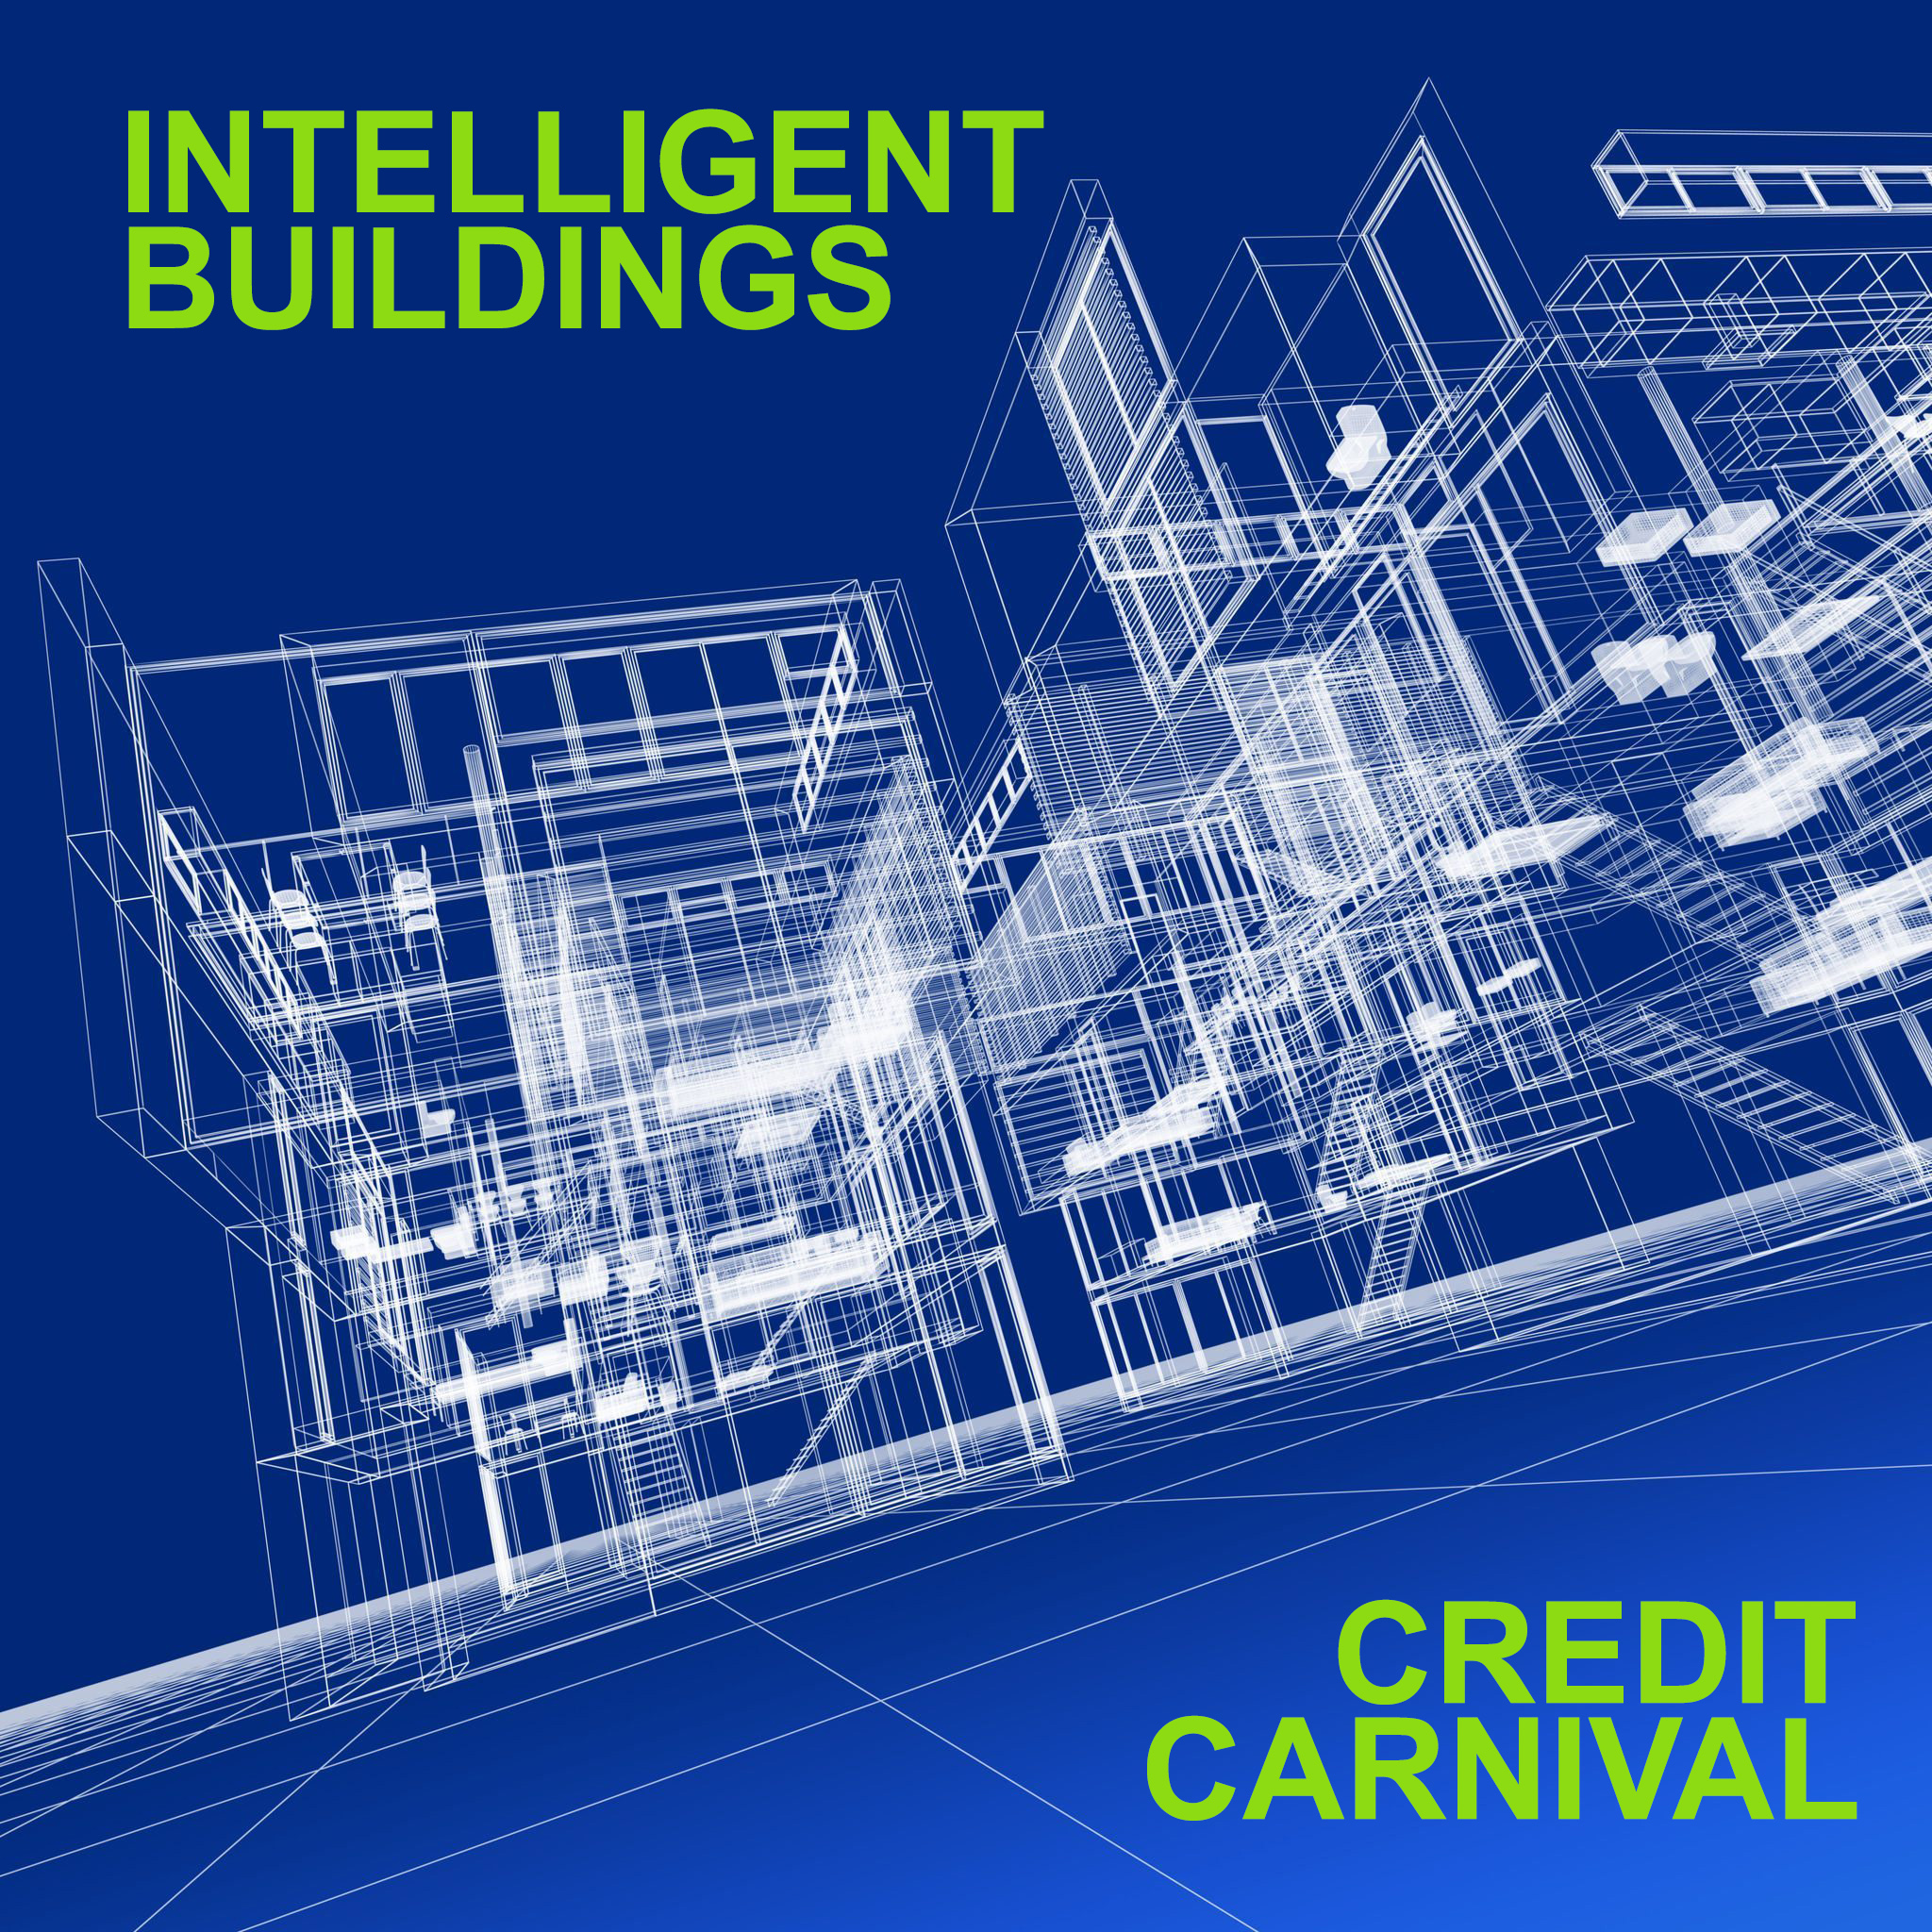 Credit Carnival: Intelligent Buildings